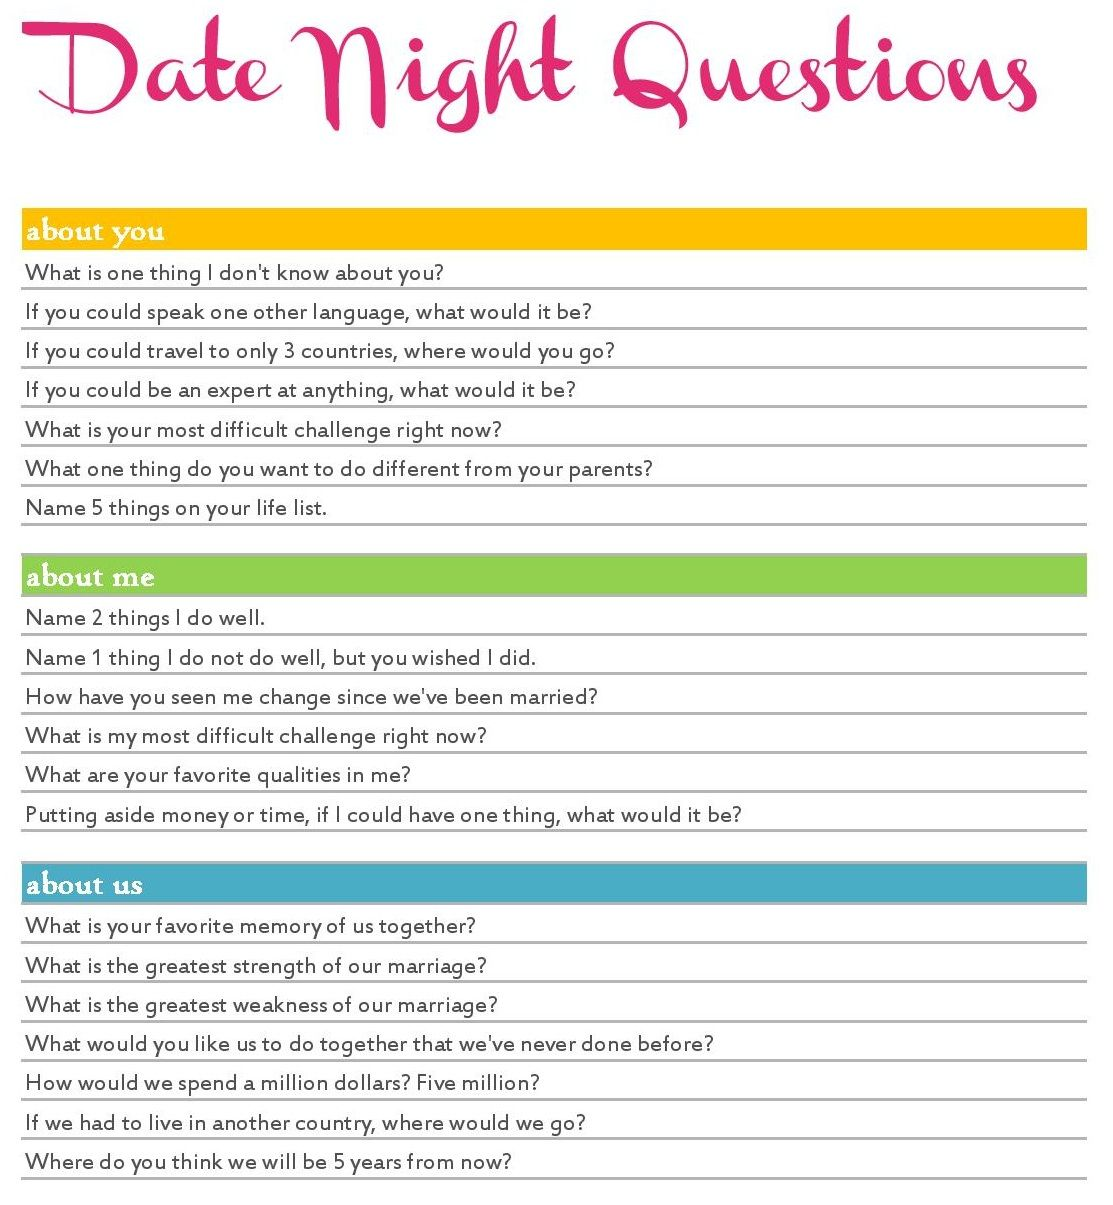 31 Days 20 Date Night Questions Day 12